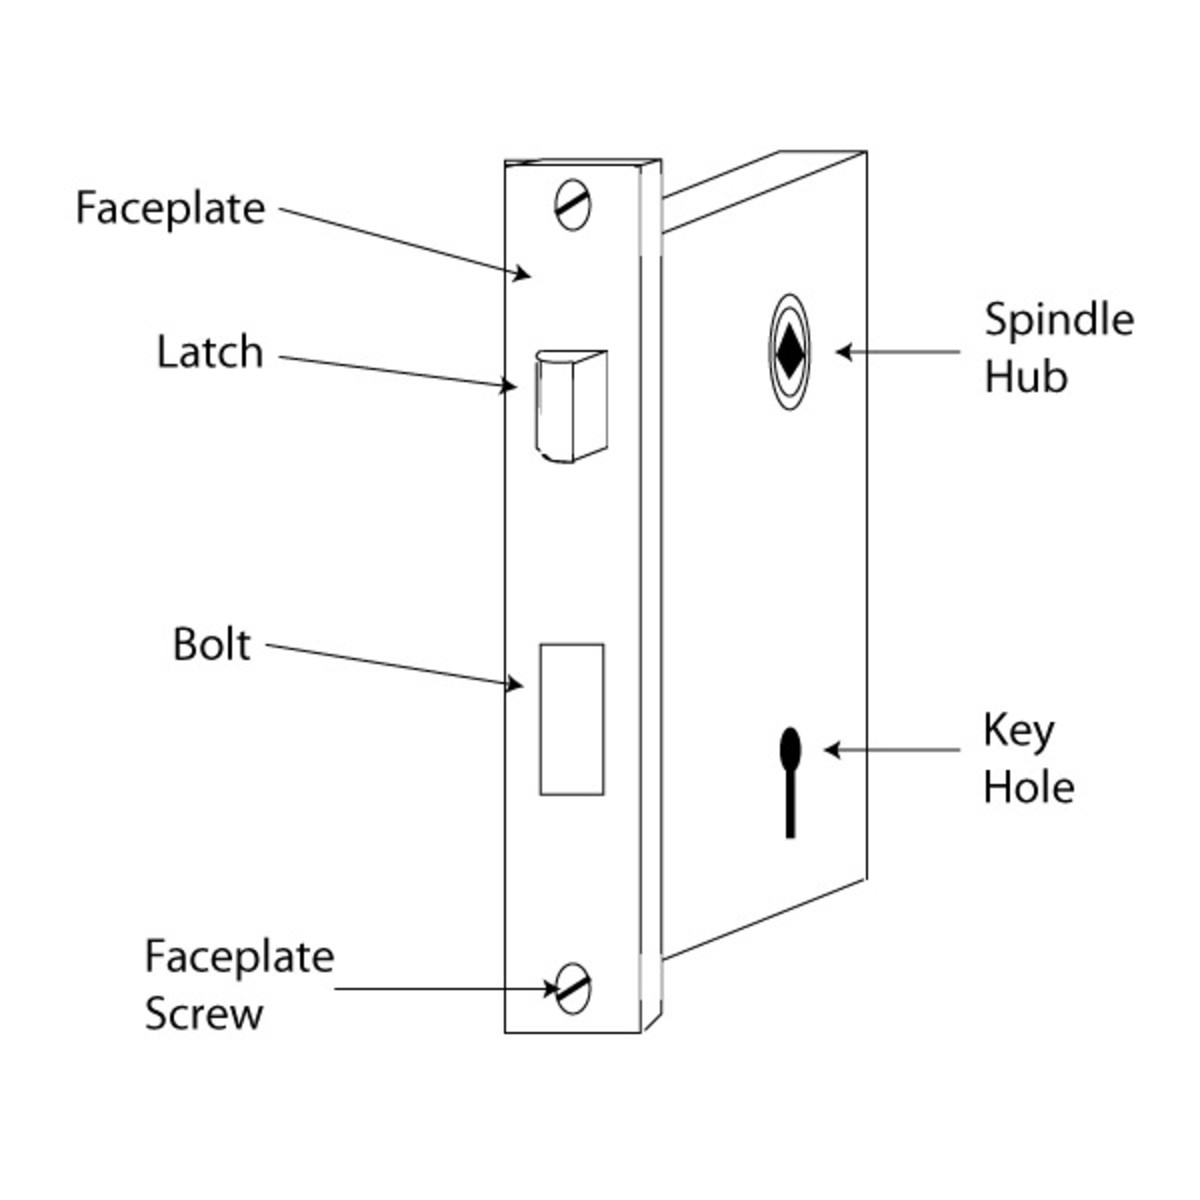 External anatomy of the bit key lock.